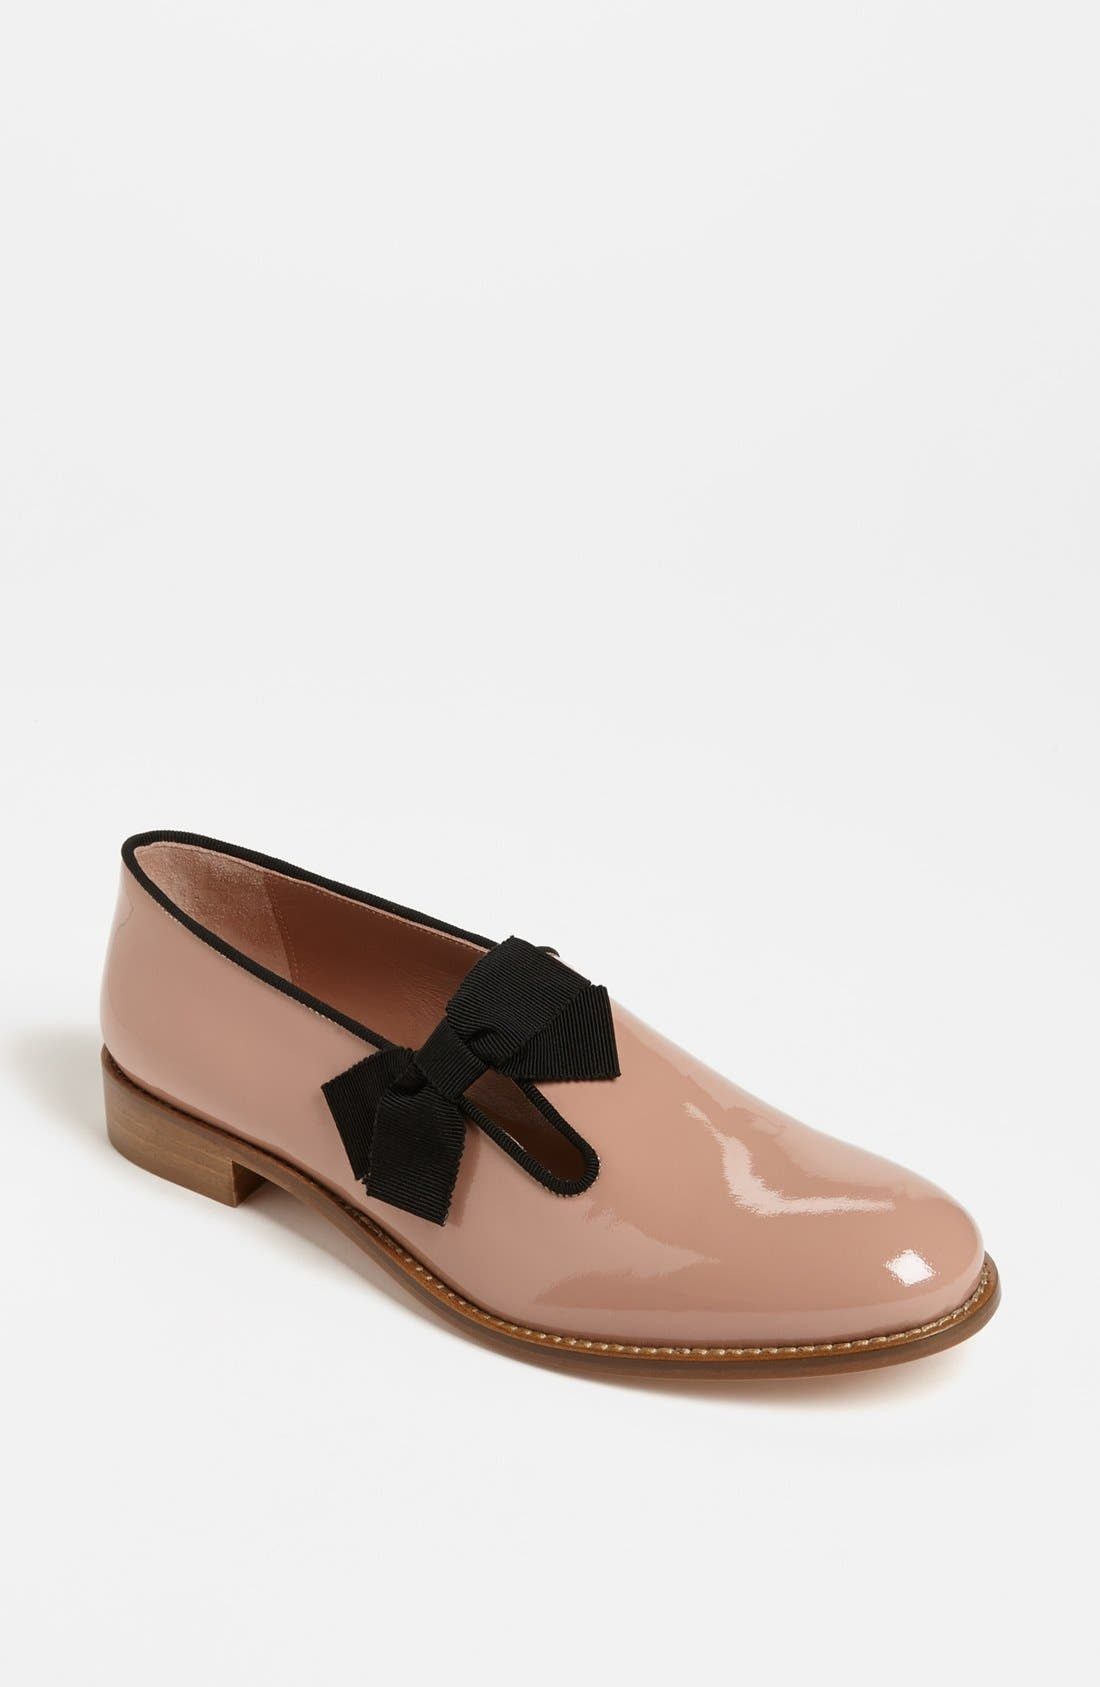 Main Image - RED Valentino Patent Leather Tuxedo Loafer